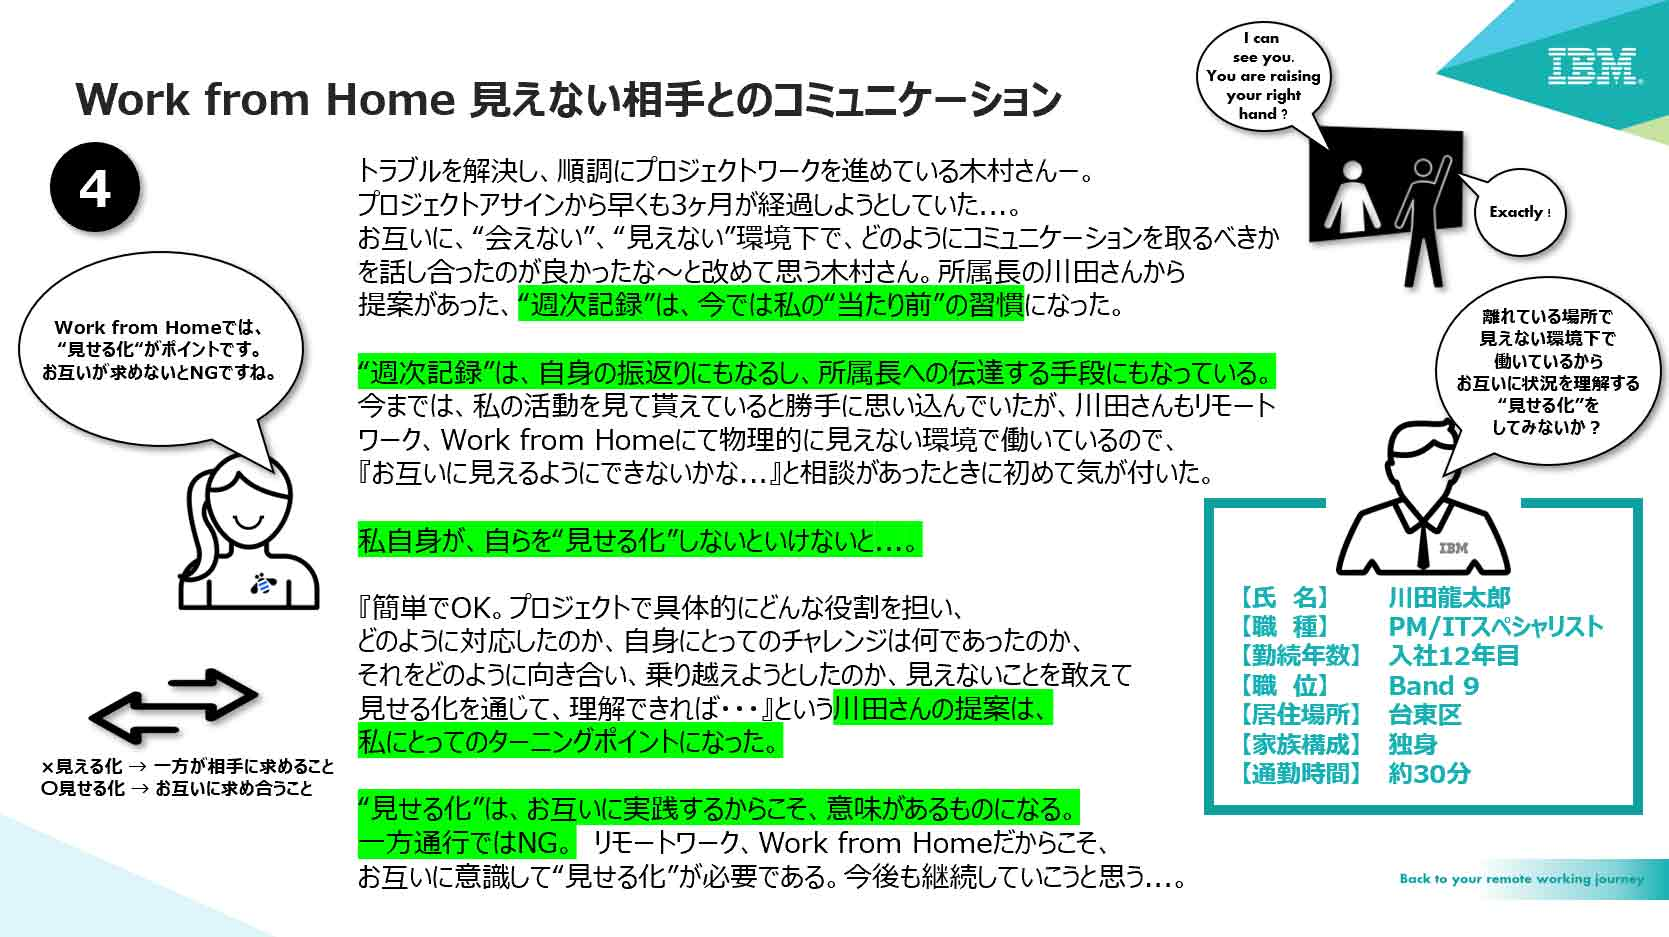 Work from Home 見えない相手とのコミュニケーション